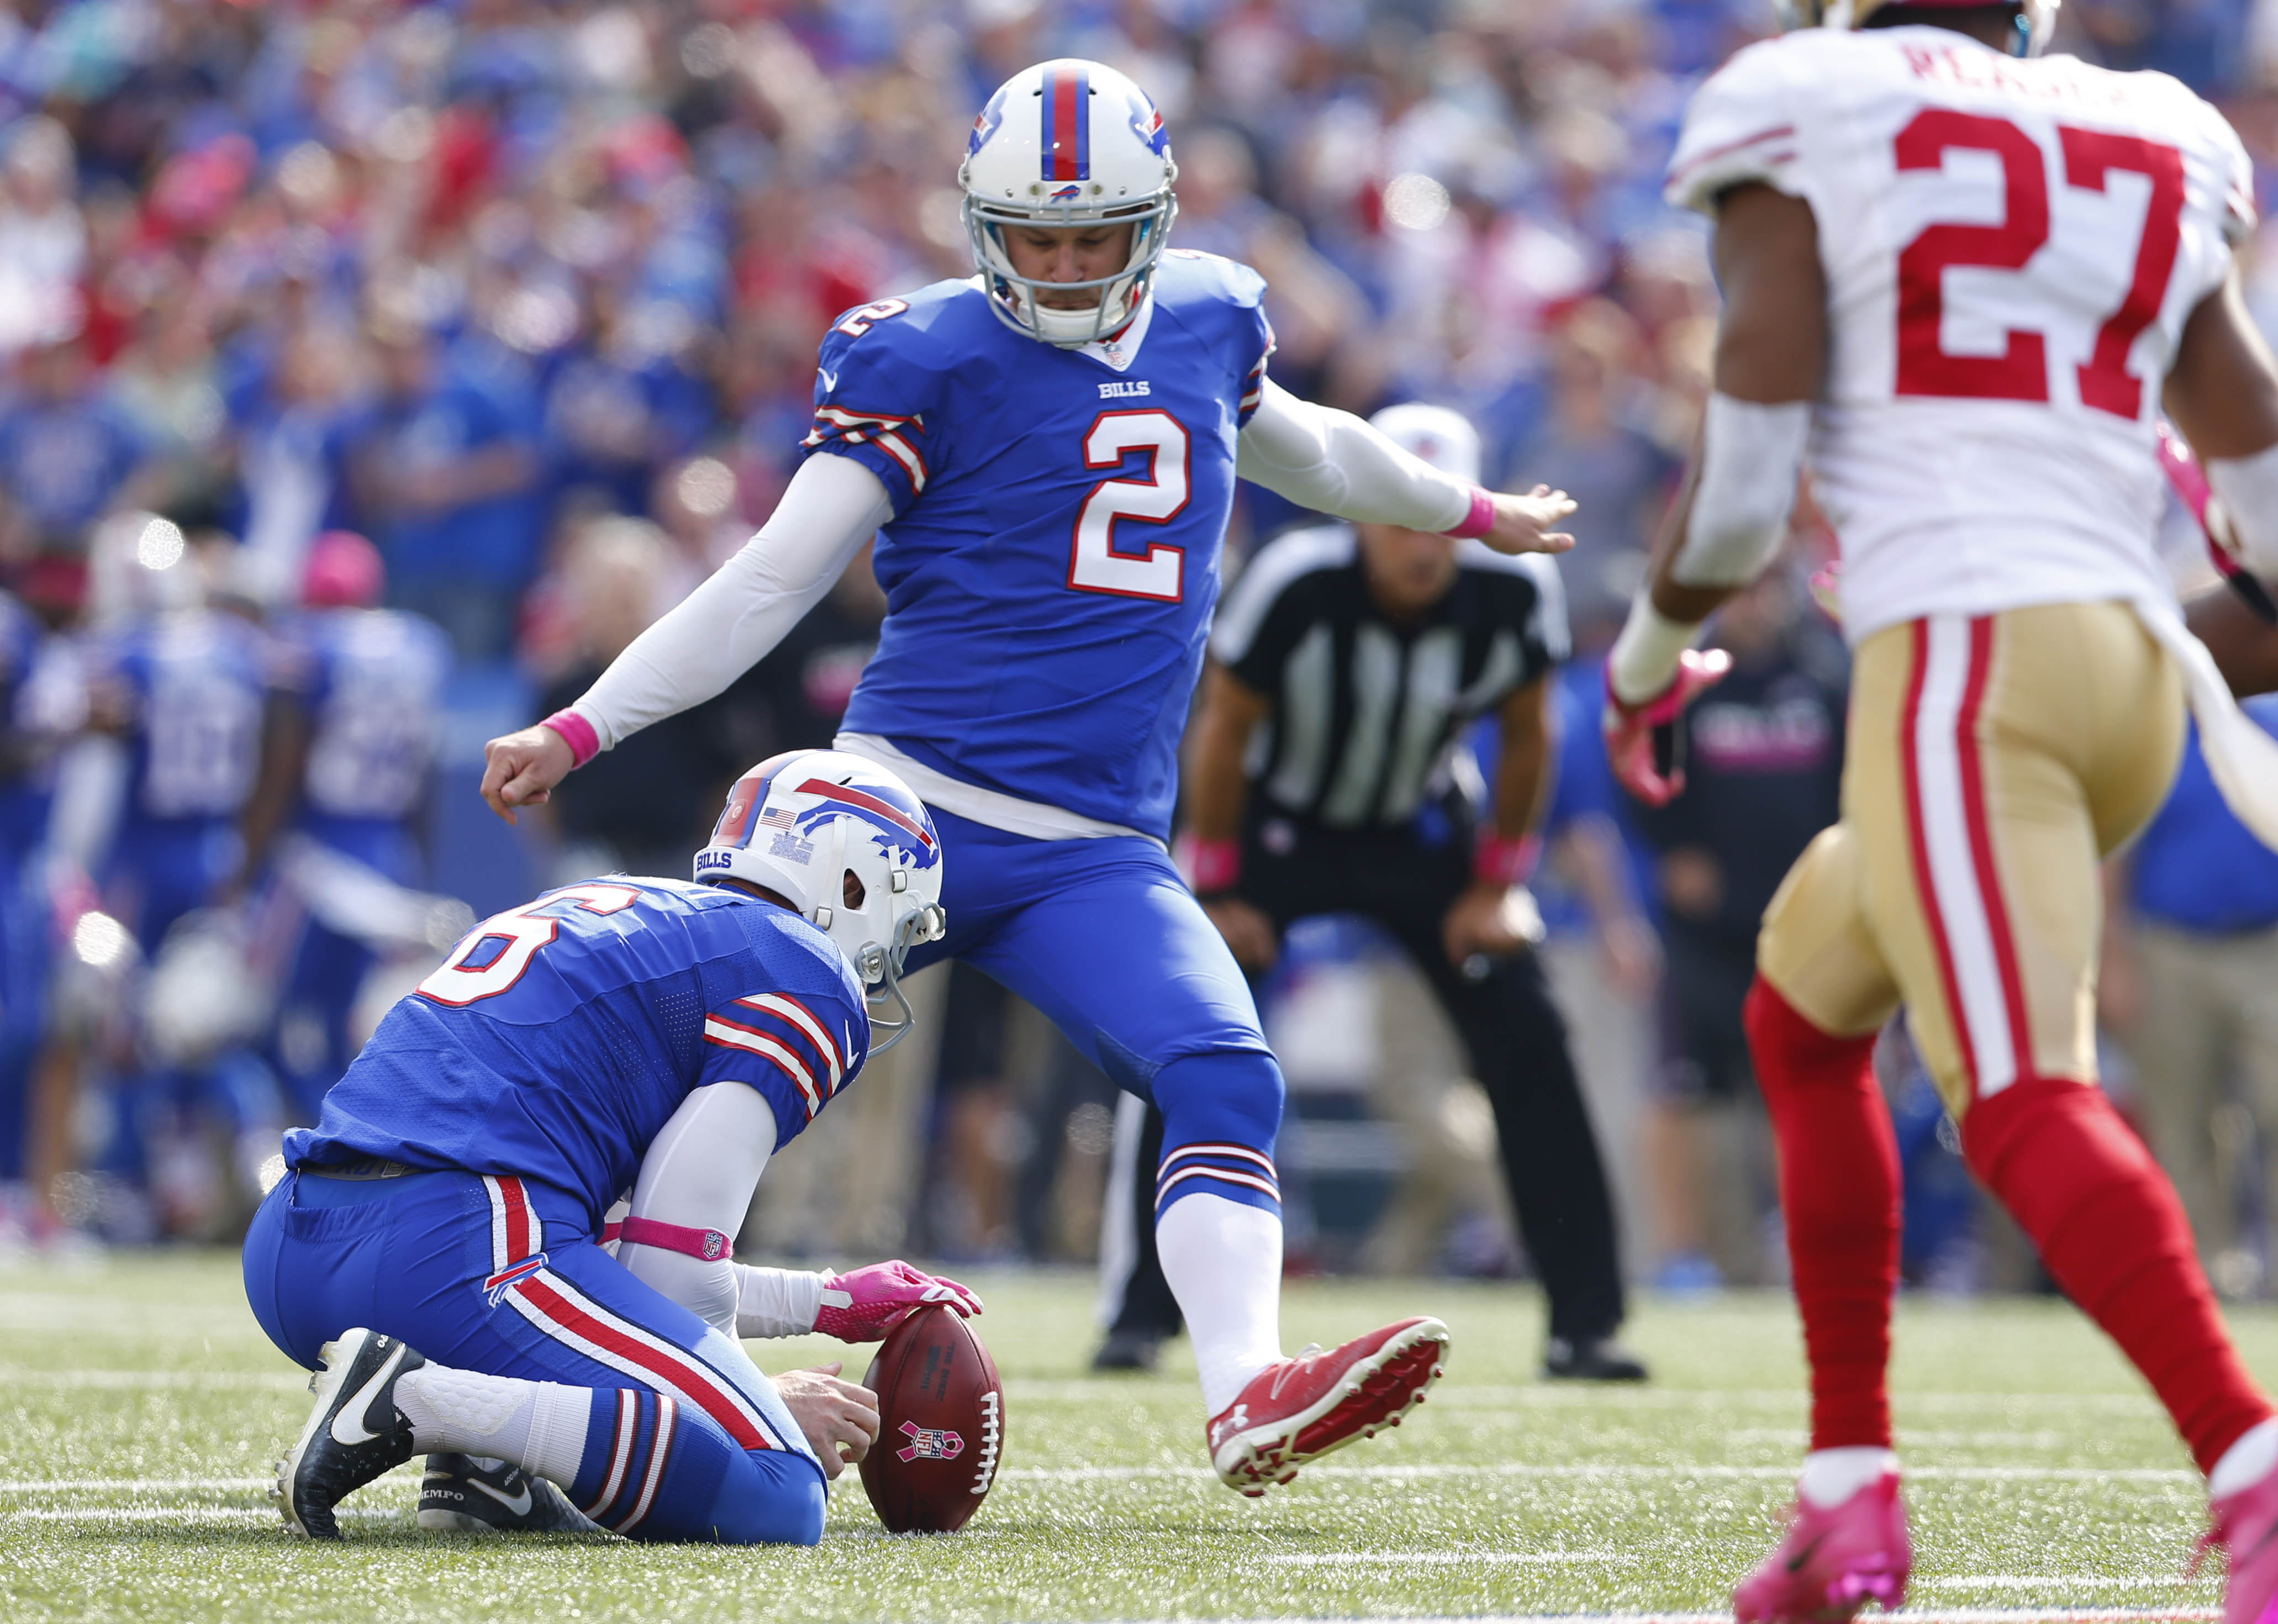 Buffalo Bills kicker Dan Carpenter was perfect on special teams Sunday against the 49ers, part of a dominant performance by the special teams. (Mark Mulville/The Buffalo News)